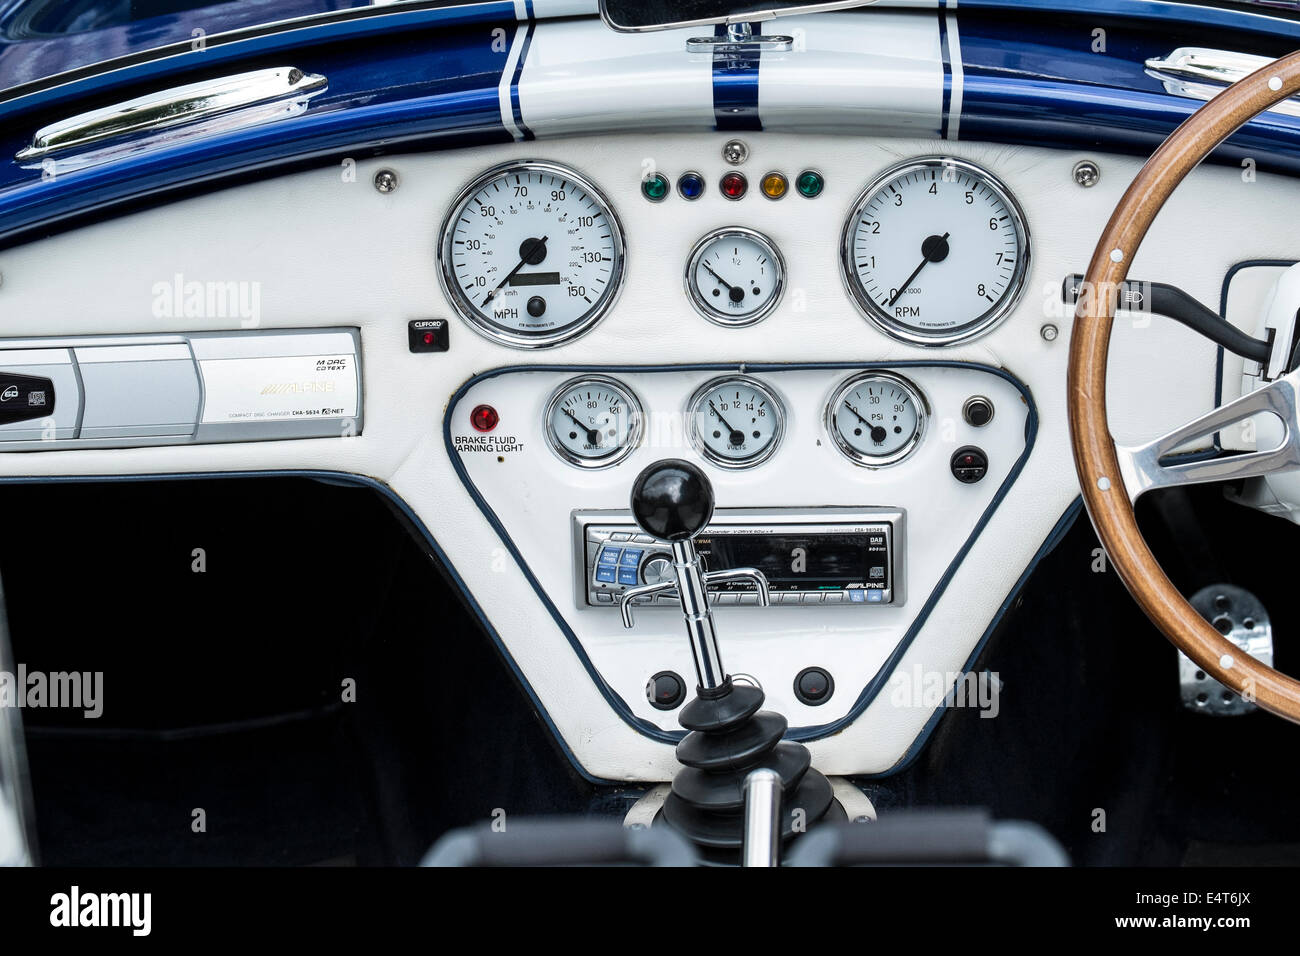 Classic Cobra Sports car dashboard with traditional dials - Stock Image